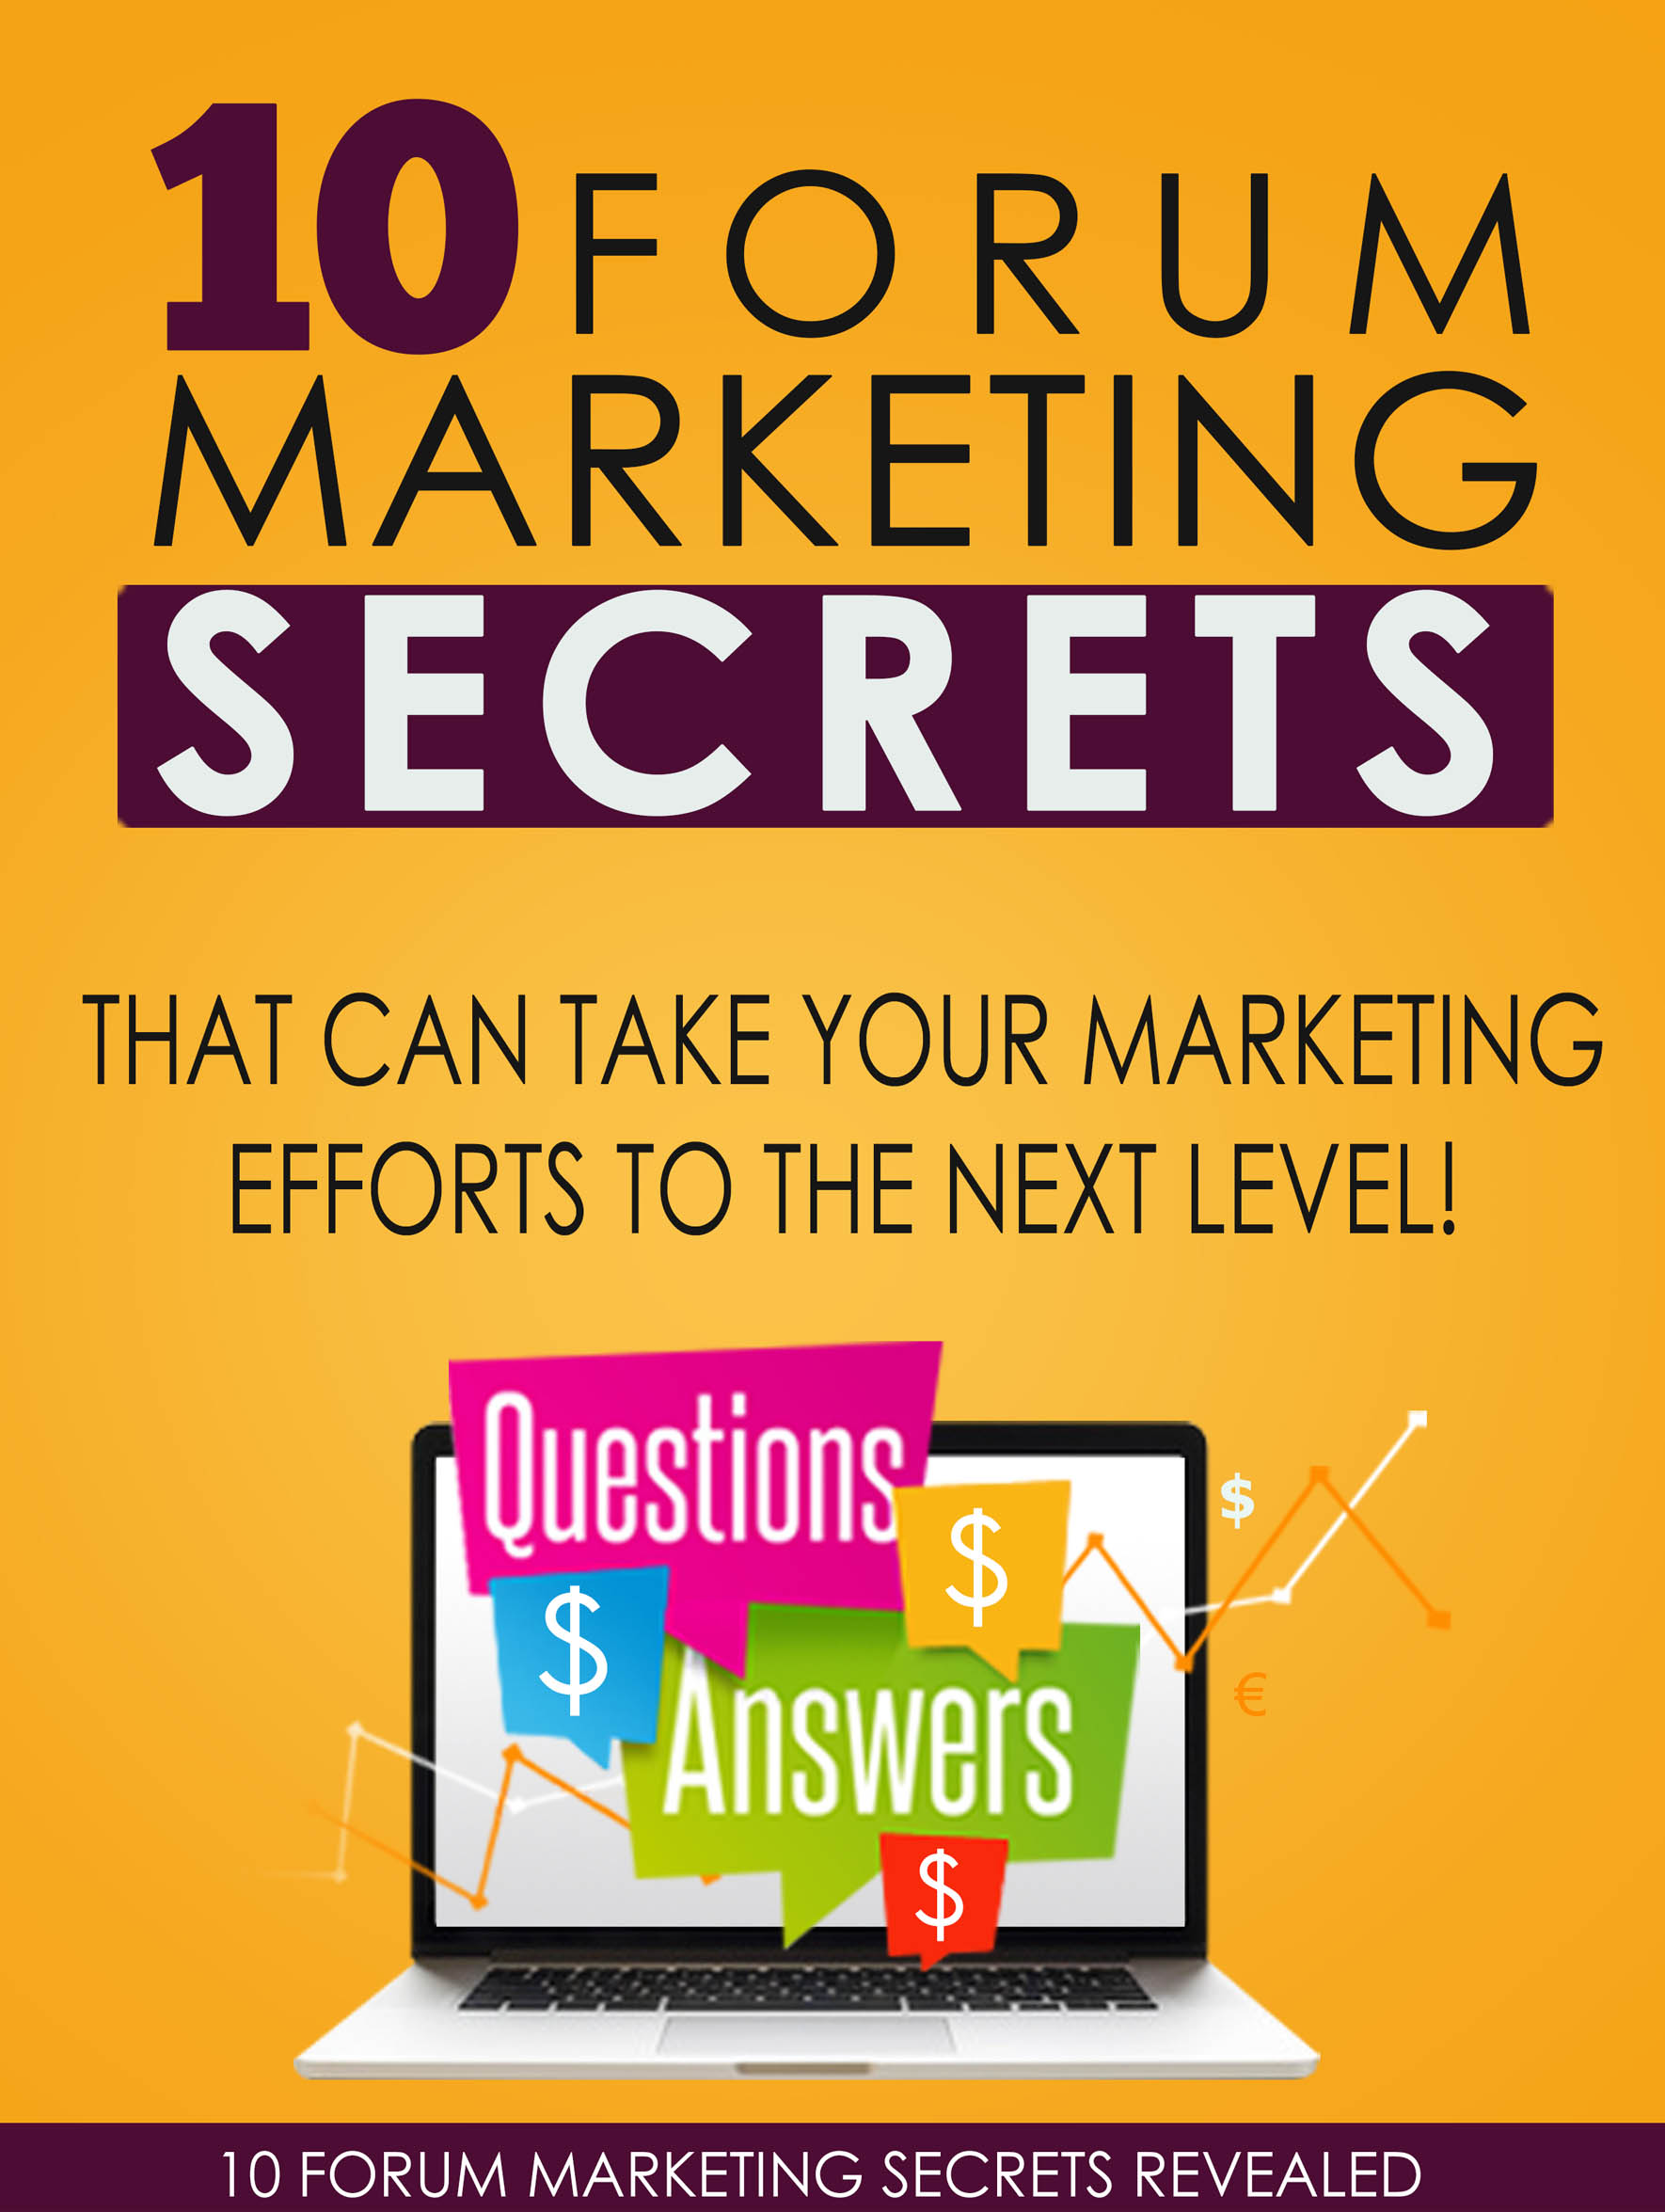 Increase Your Sales With These Forum Marketing Secrets